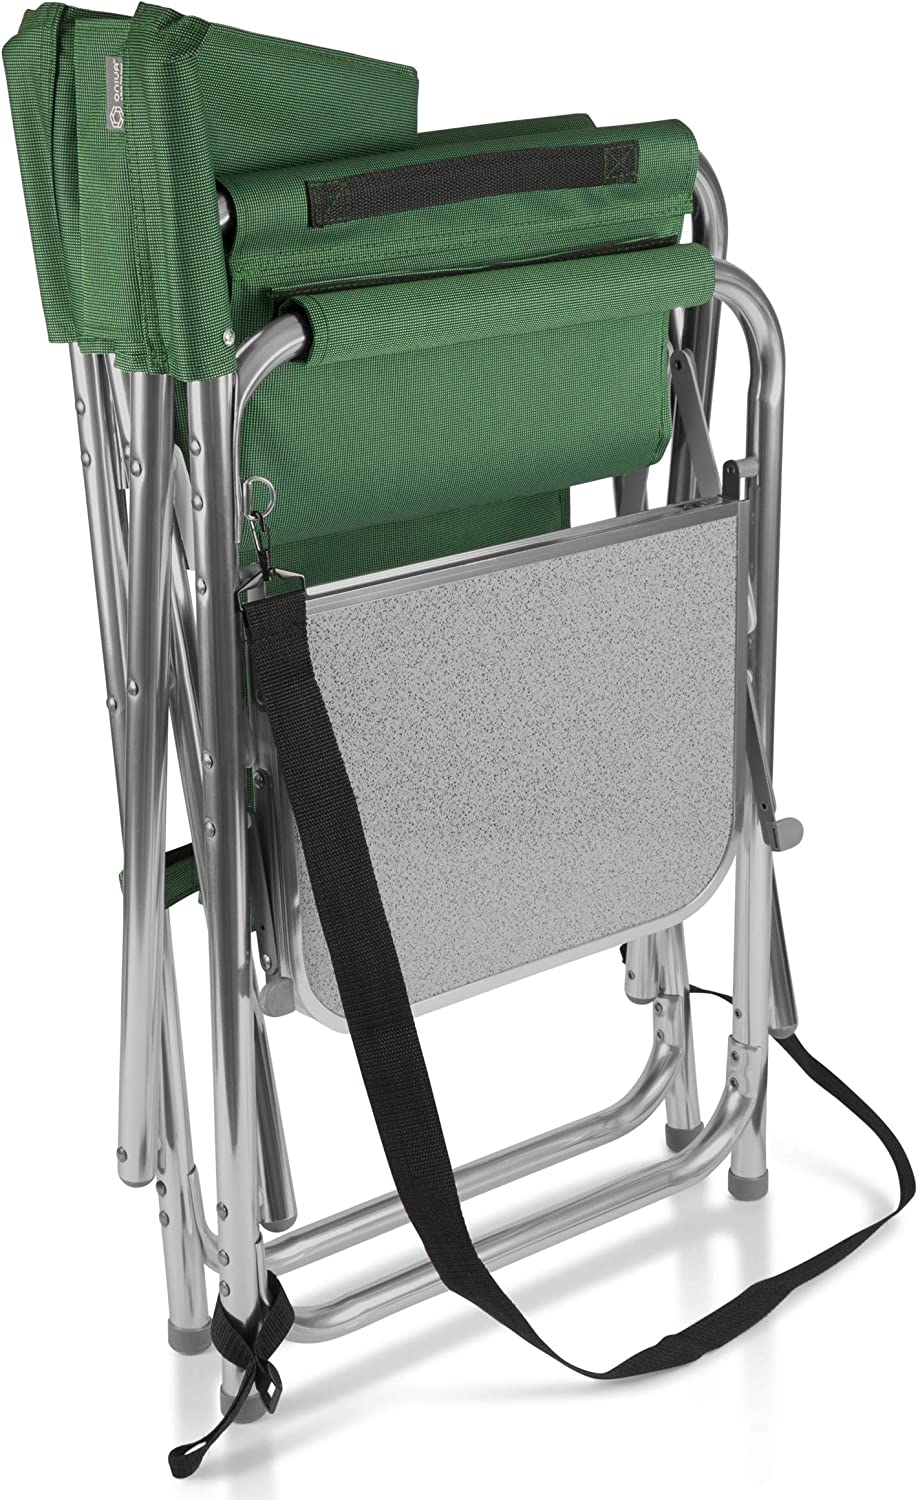 Hunter Green a Brand Portable Folding Sports Chair PICNIC TIME ONIVA